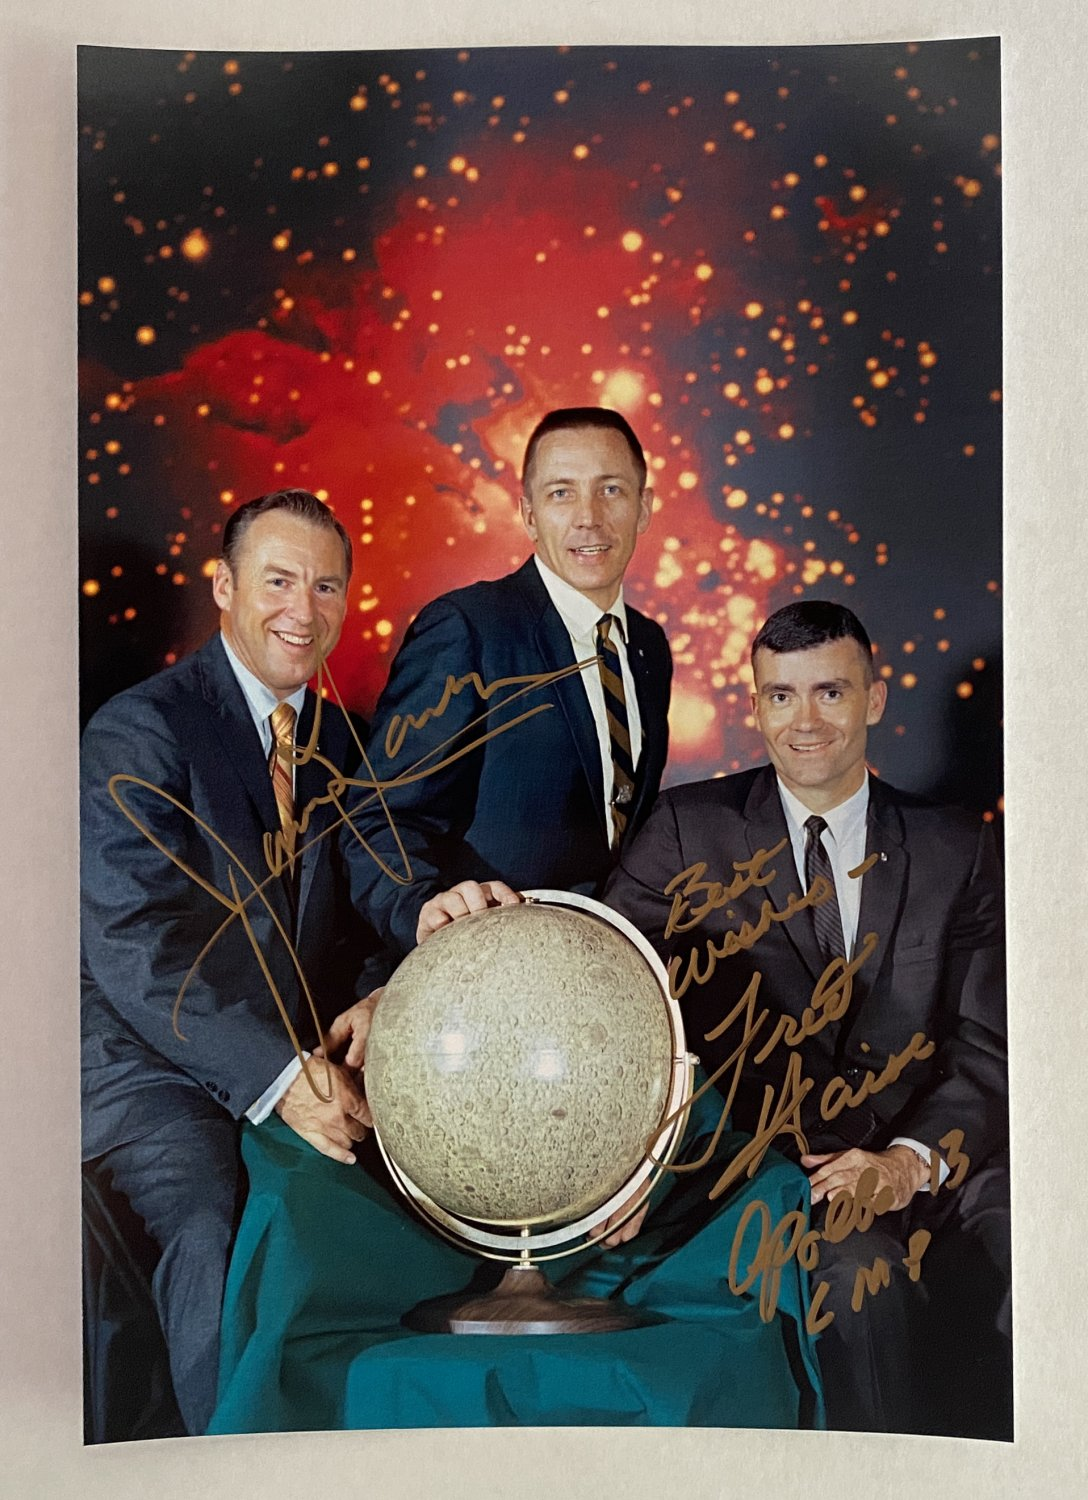 Apollo 13 crew James Jim Lovell Fred Haise dual signed autographed 8x12 photo astronauts